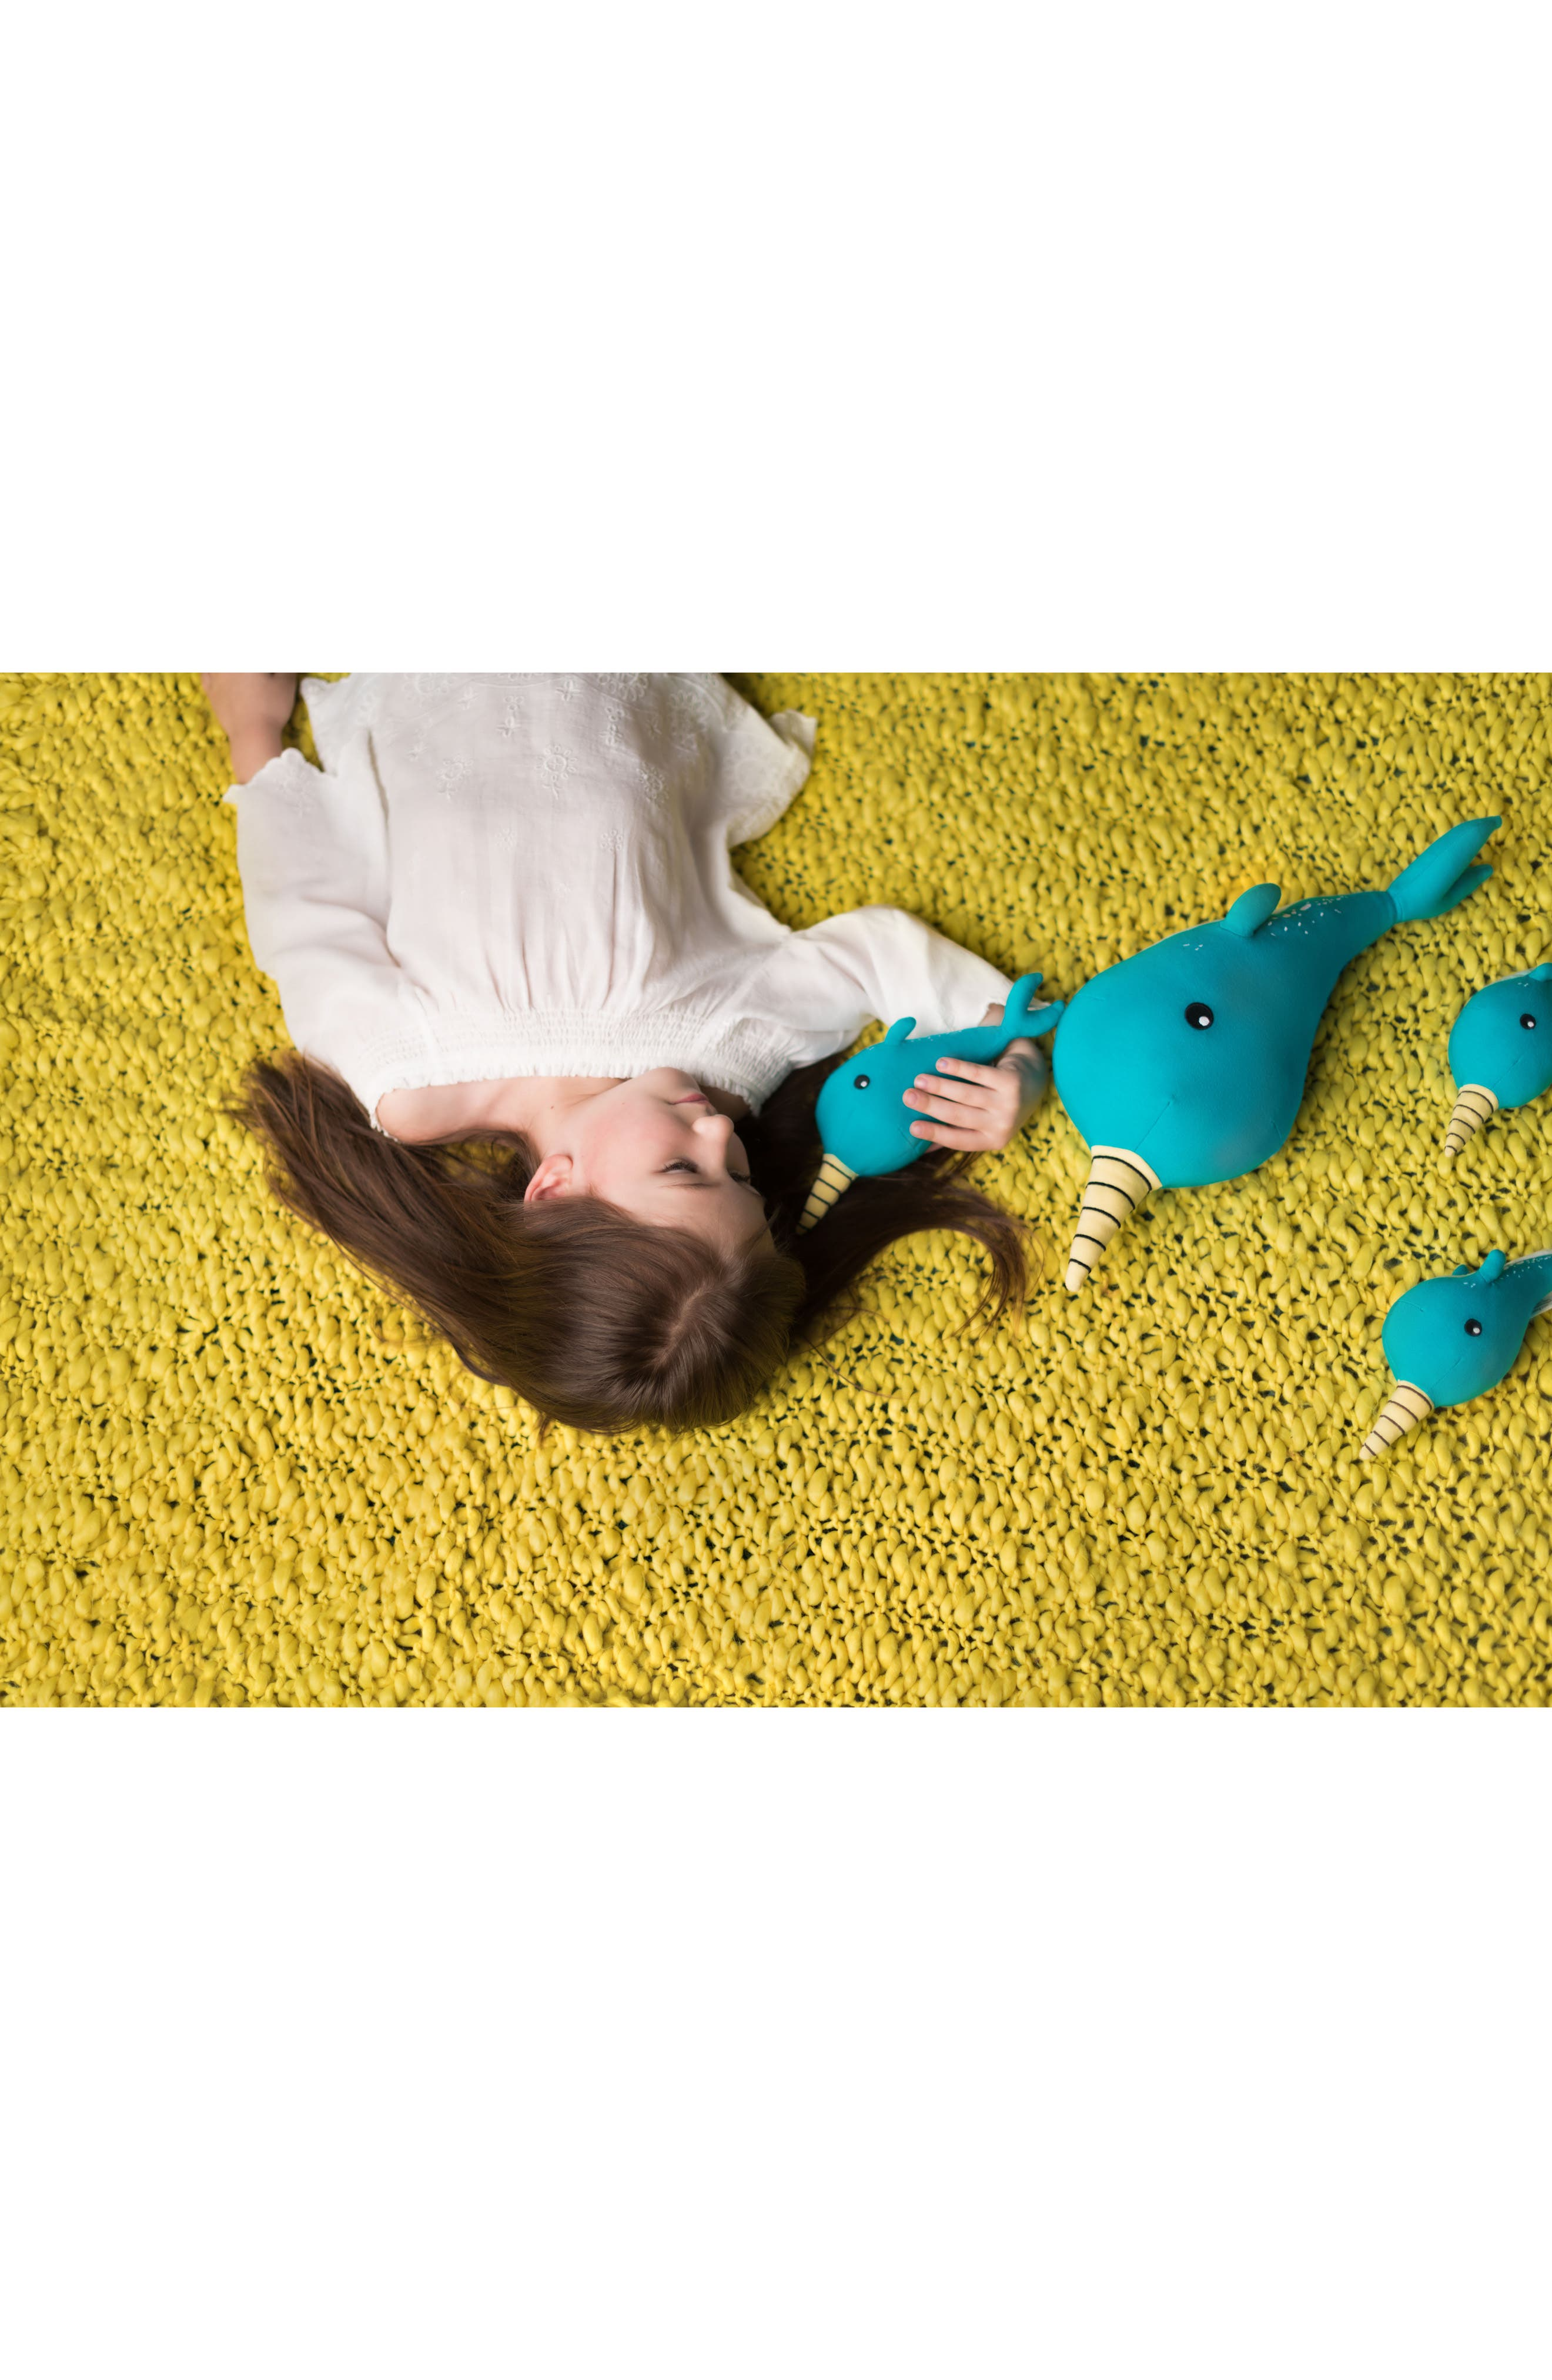 Small Norman Narwhal Stuffed Animal,                             Alternate thumbnail 3, color,                             Blue